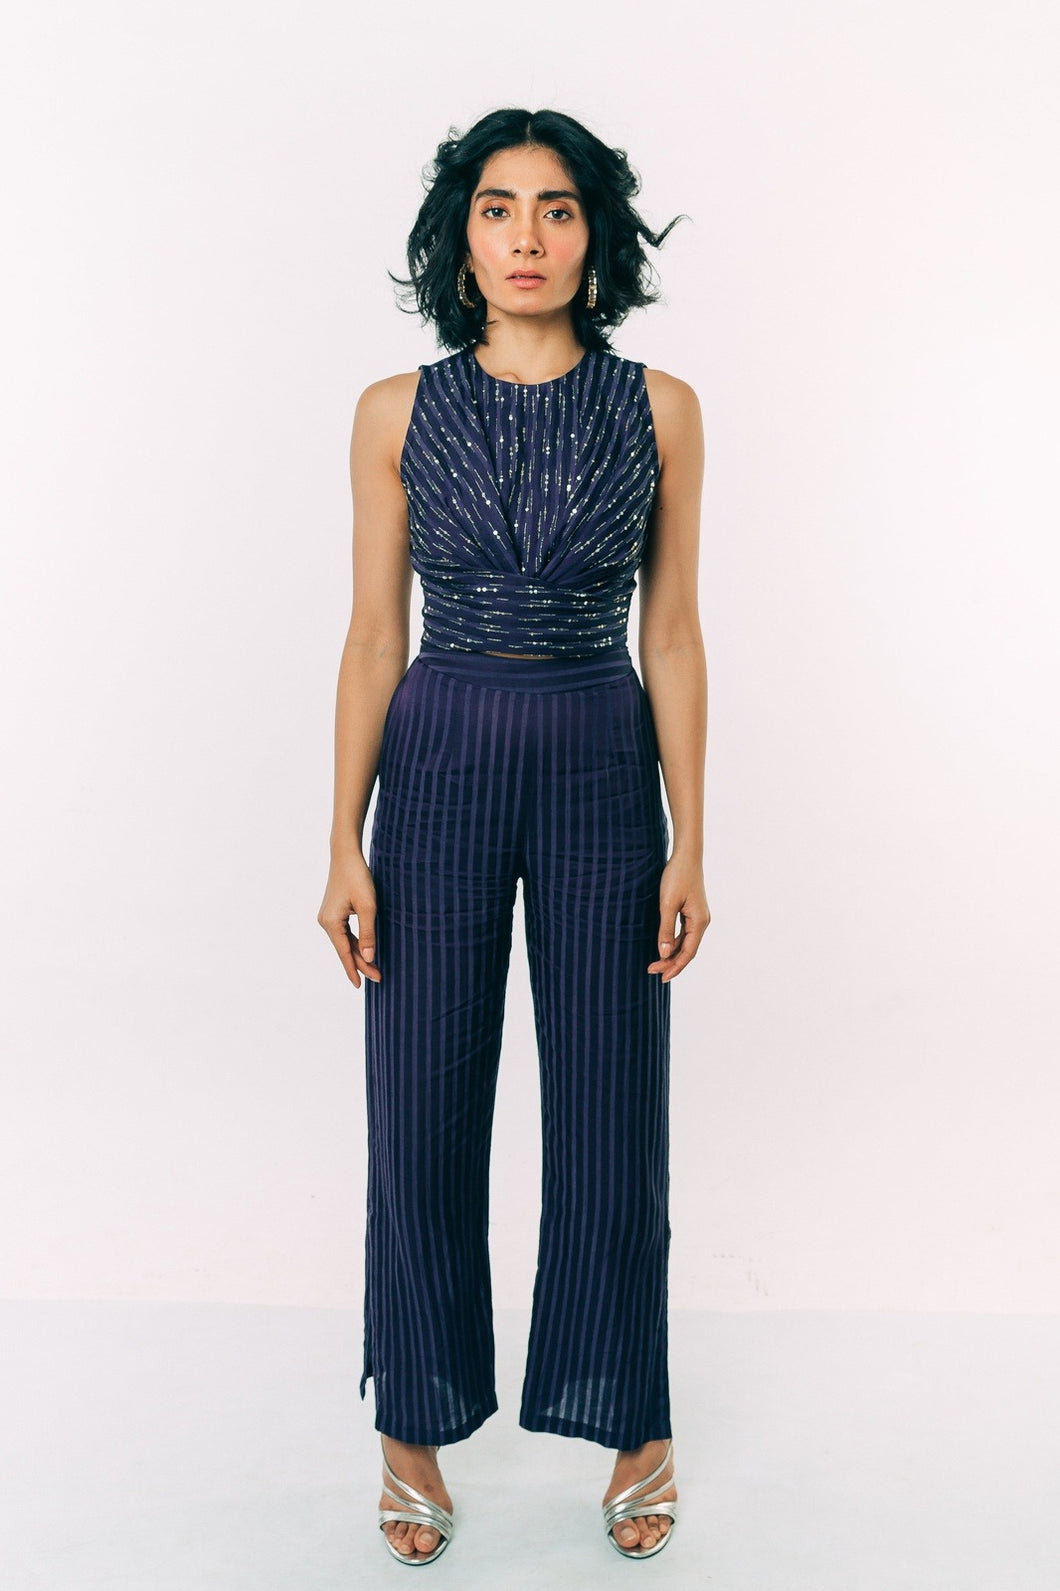 Blue Sequin Crop Top With Striped Pants